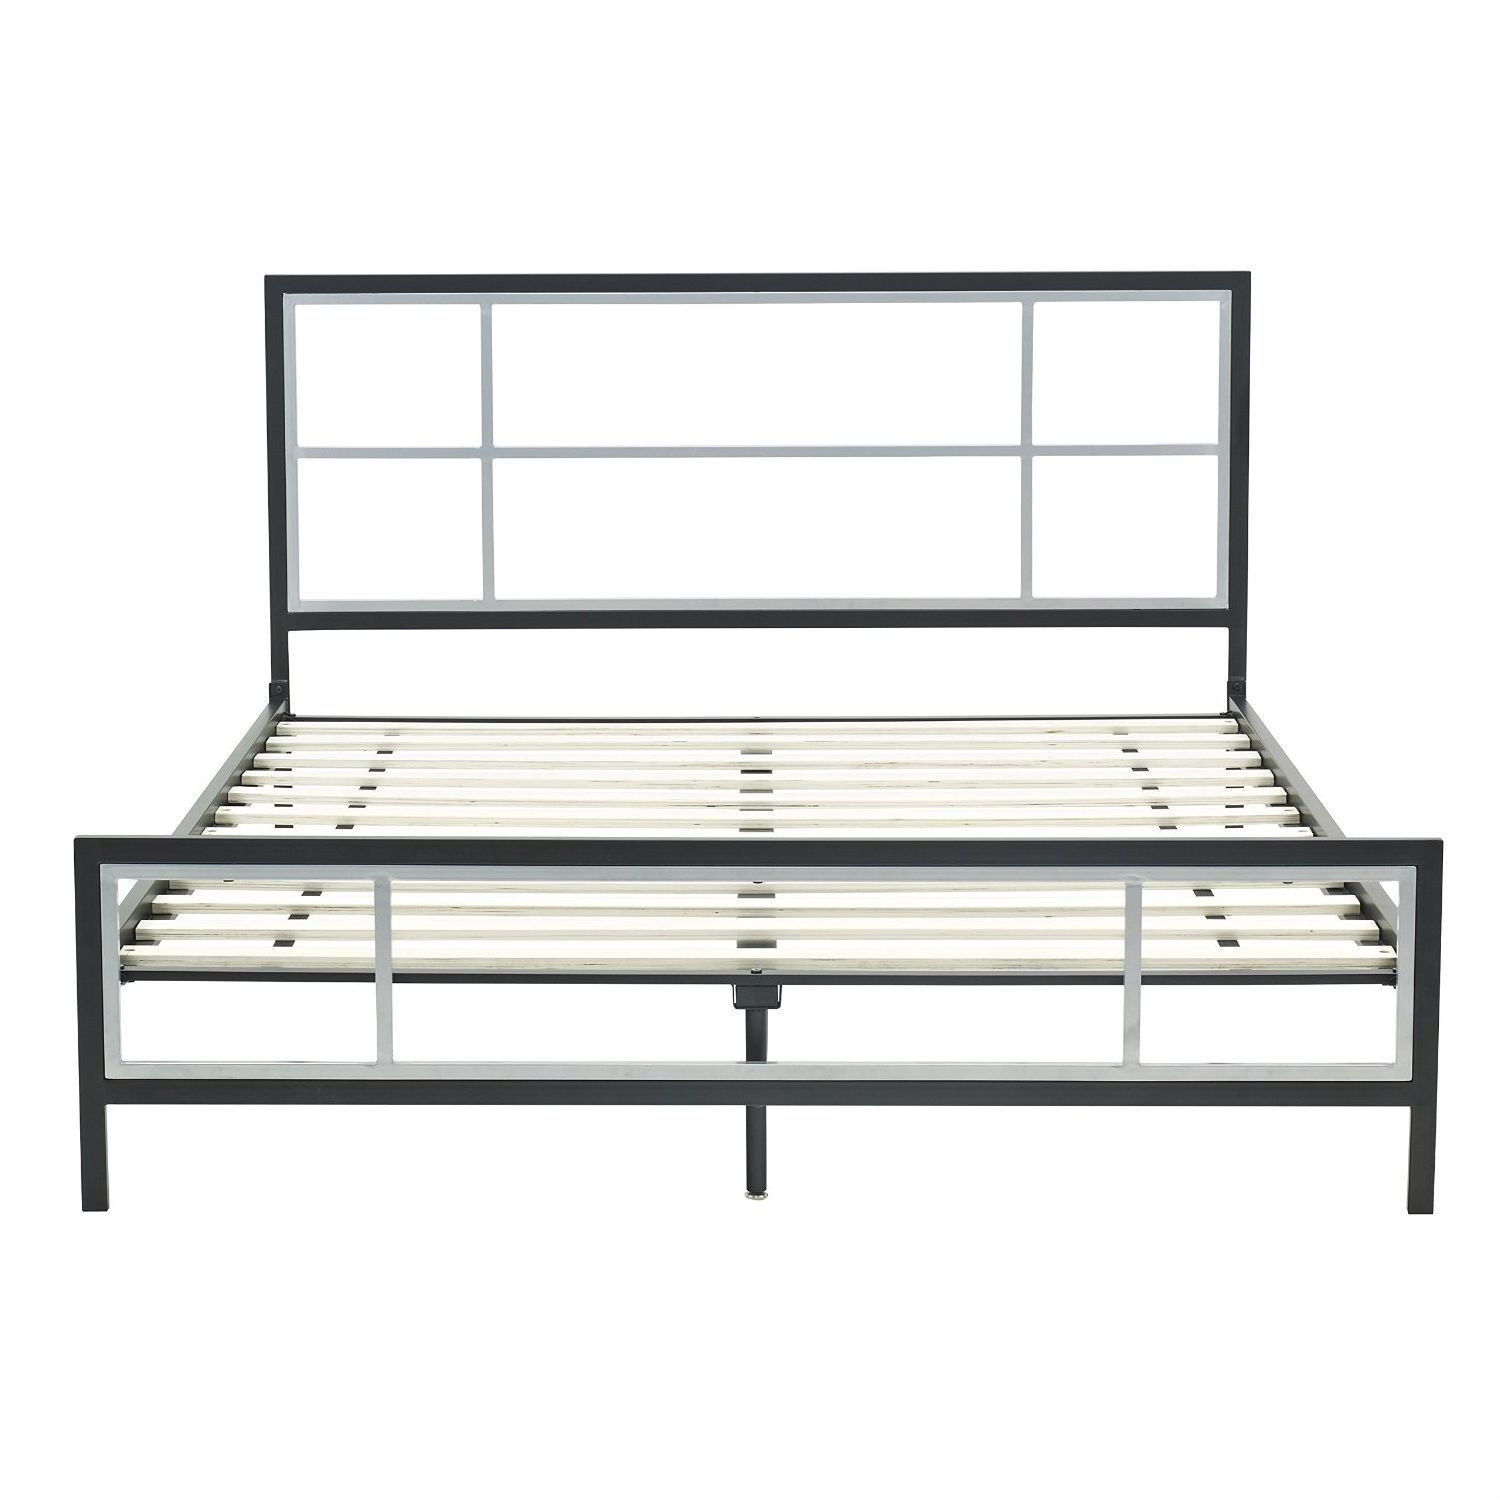 Queen Size Modern Platform Metal Bed Frame With Headboard Footboard